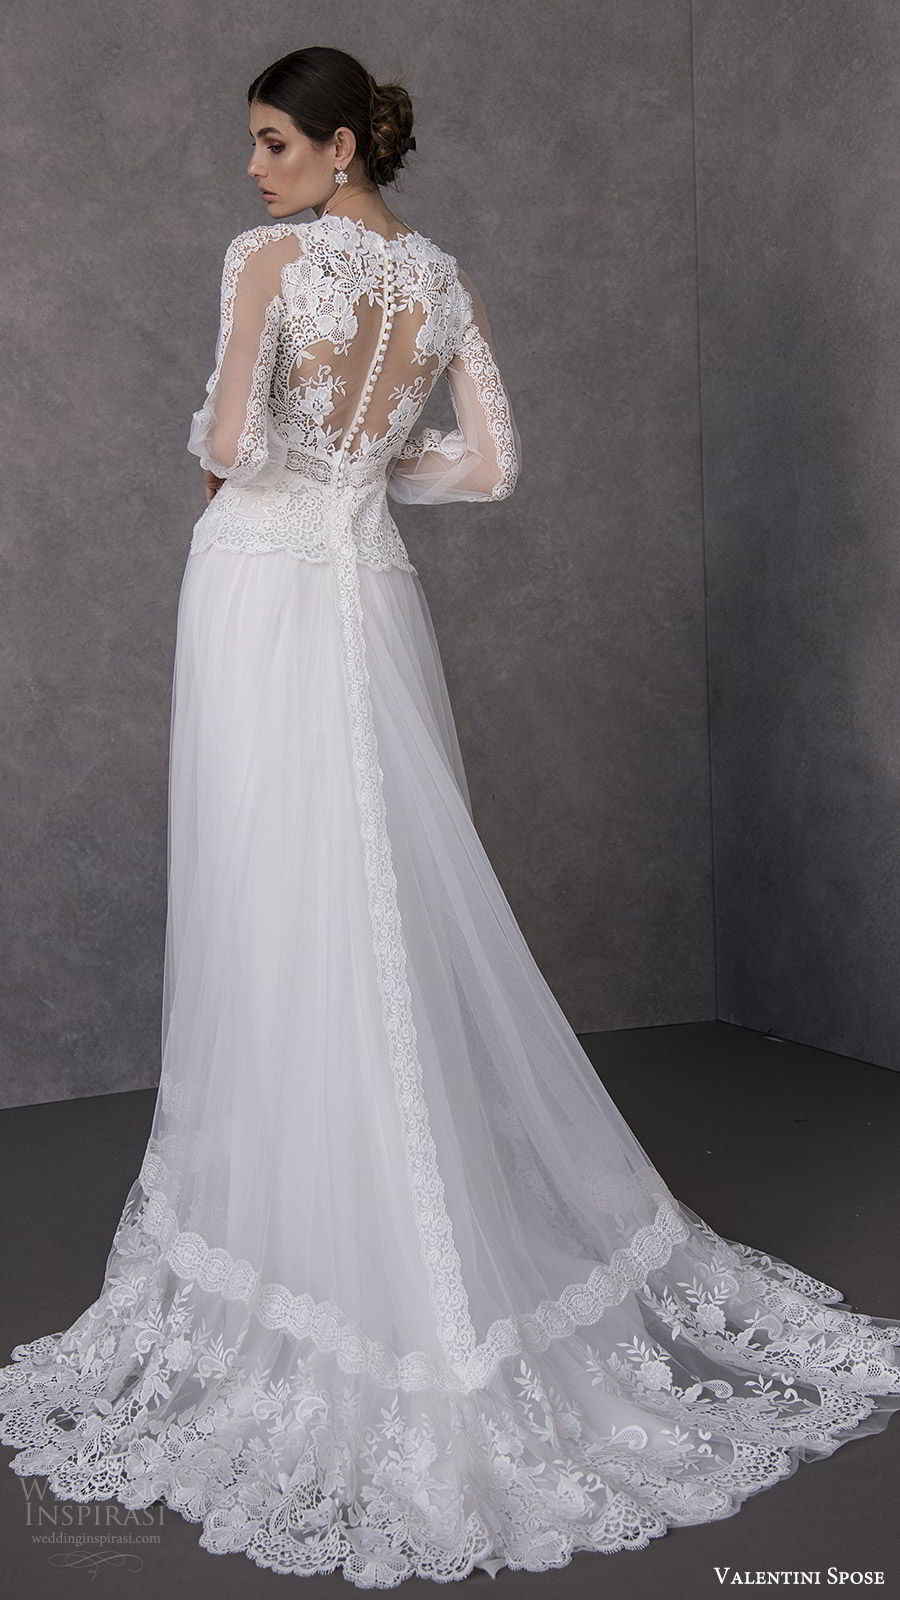 valentini spose spring 2020 bridal illusion bishop sleeves high neck lace bodice soft a line wedding dress (15) romantic boho chic bv